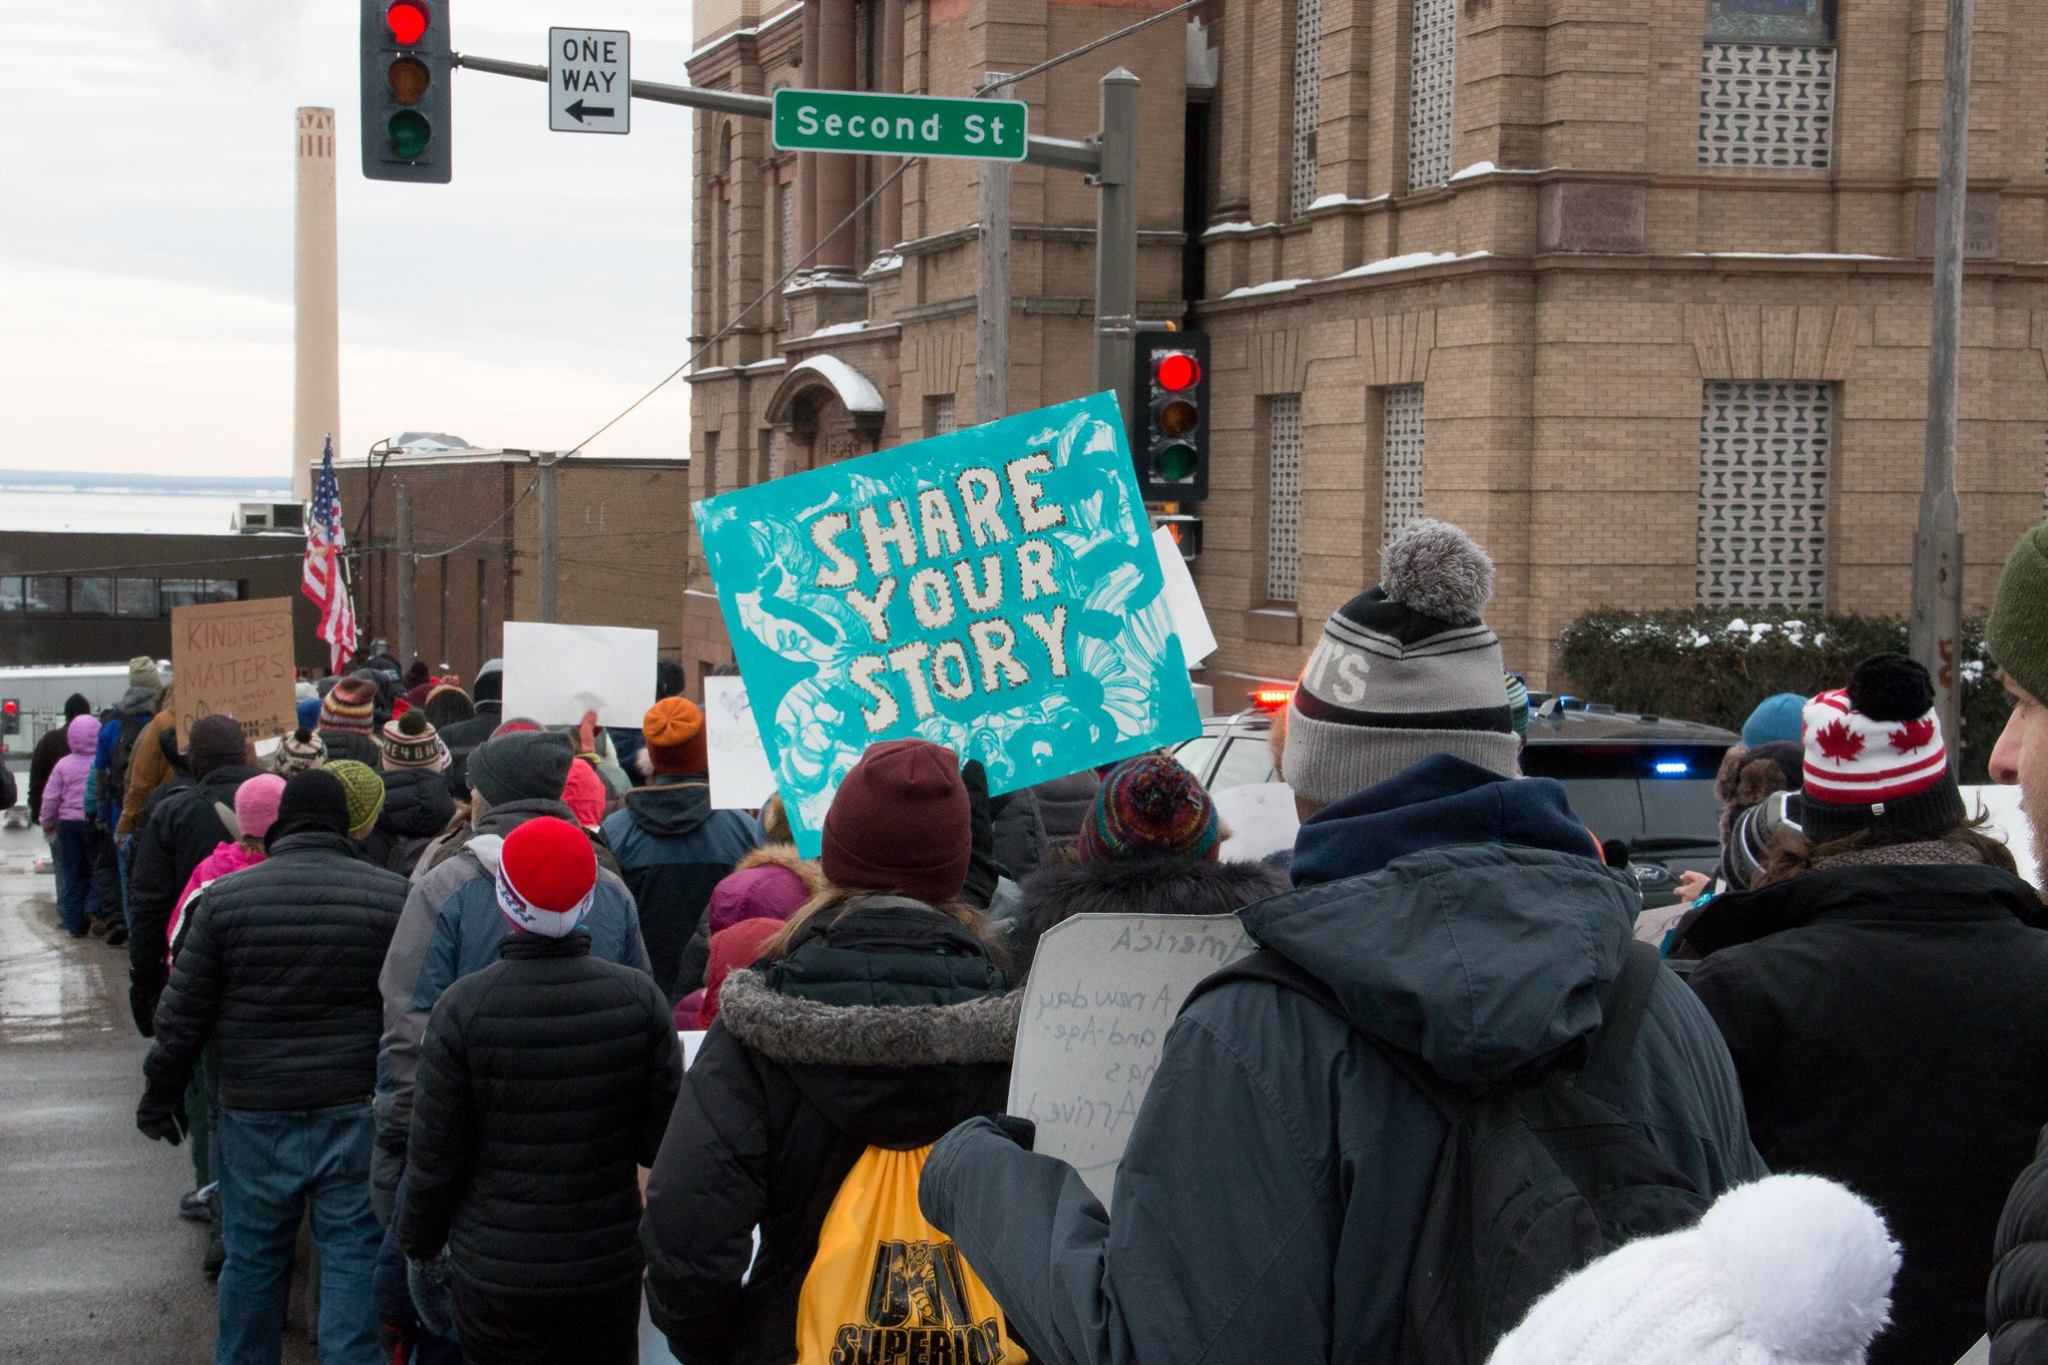 The group marched down 1st Ave. East Monday morning. Photo by: Ivy Vainio.